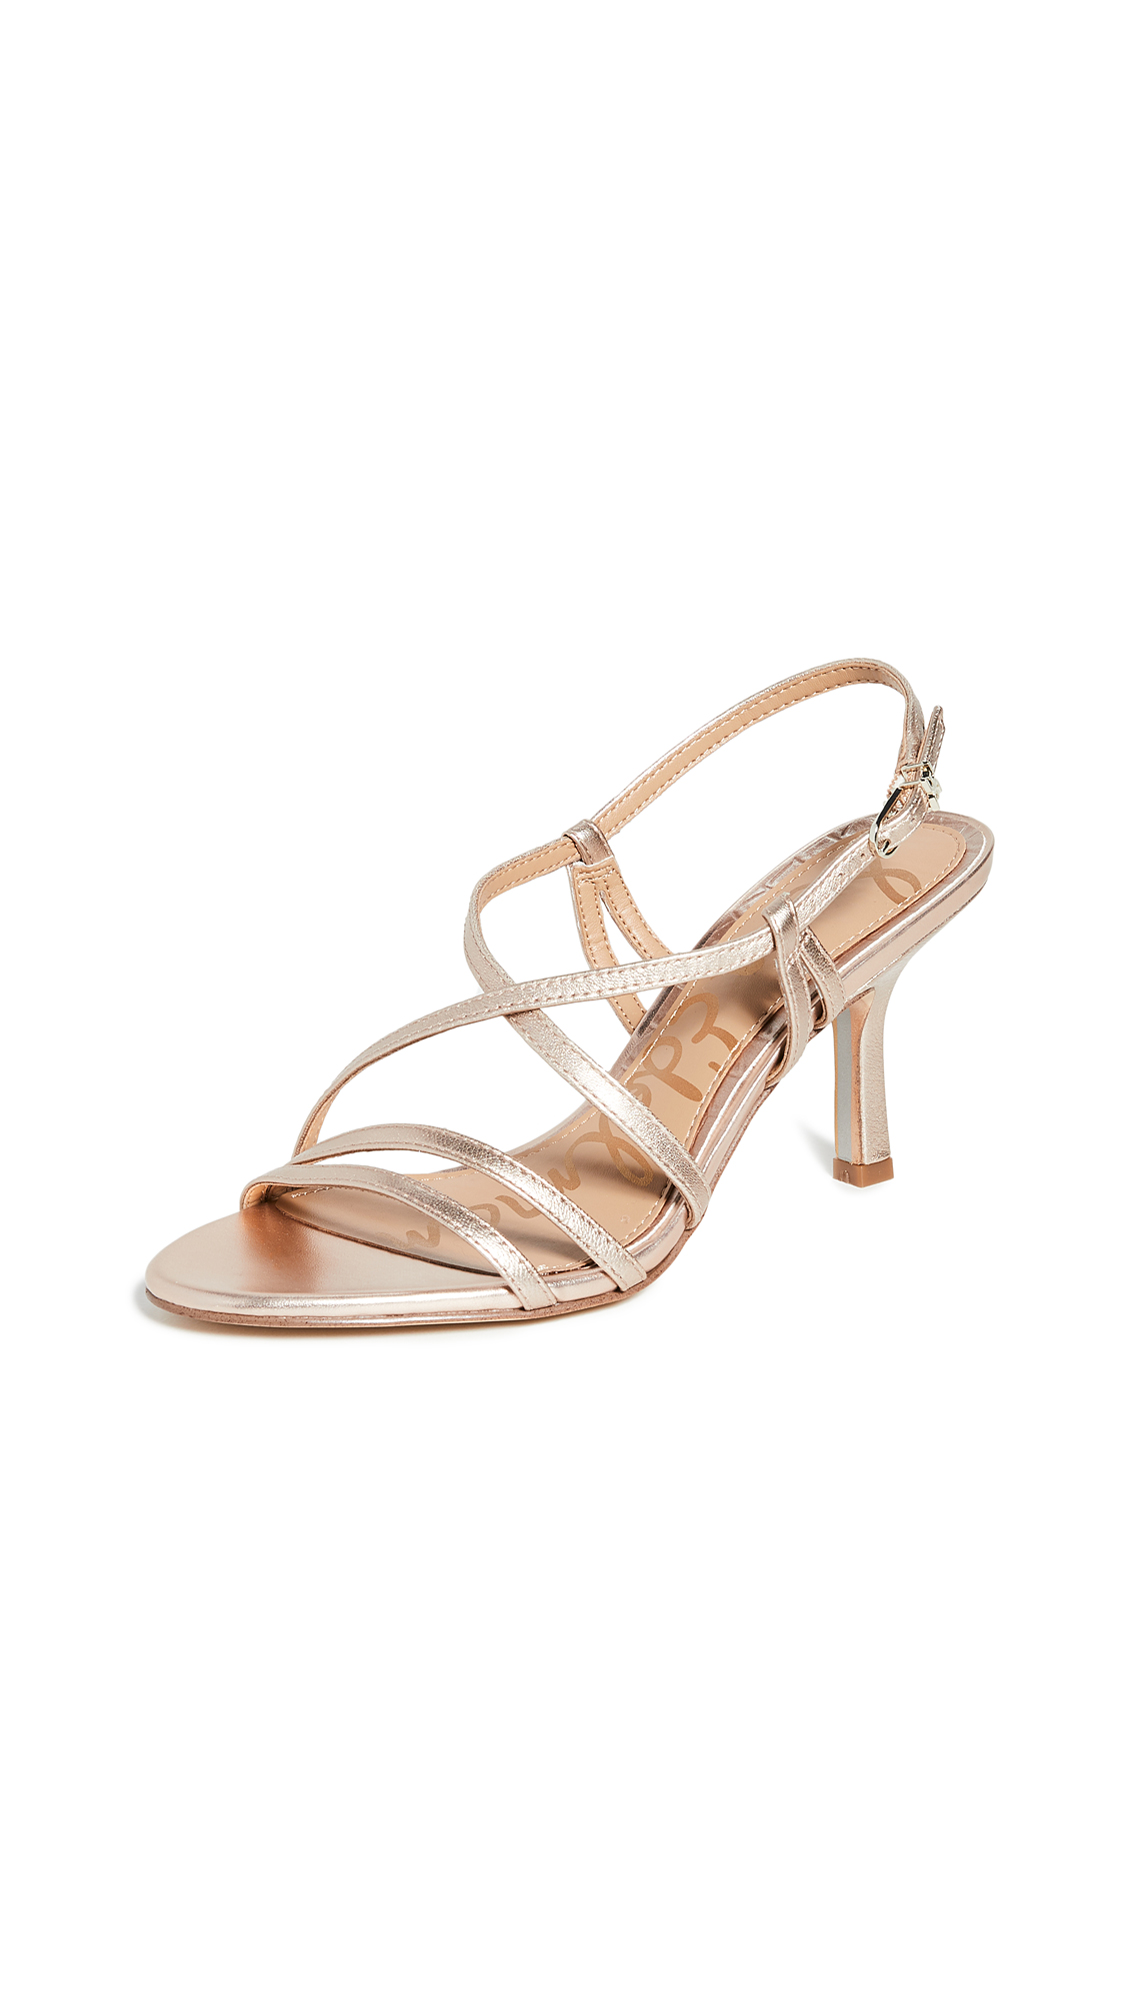 Sam Edelman Paislee Sandals – 40% Off Sale